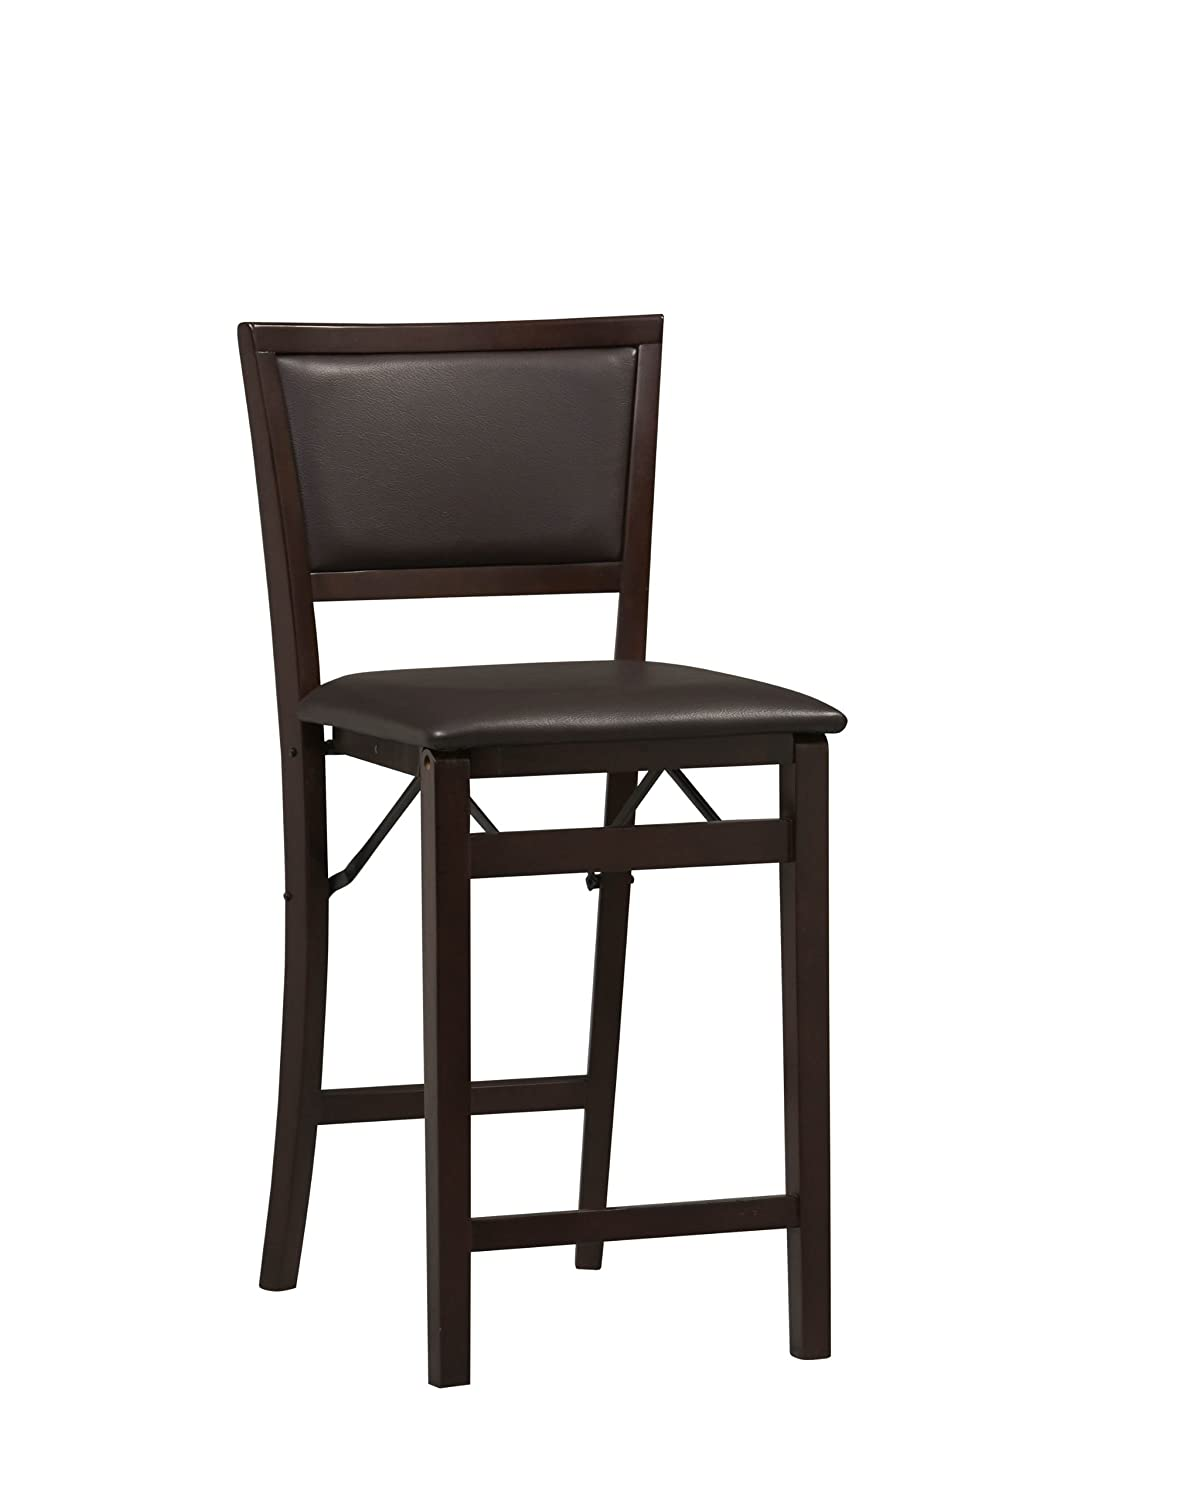 Bar Stools Counter Height With Back Bruin Blog